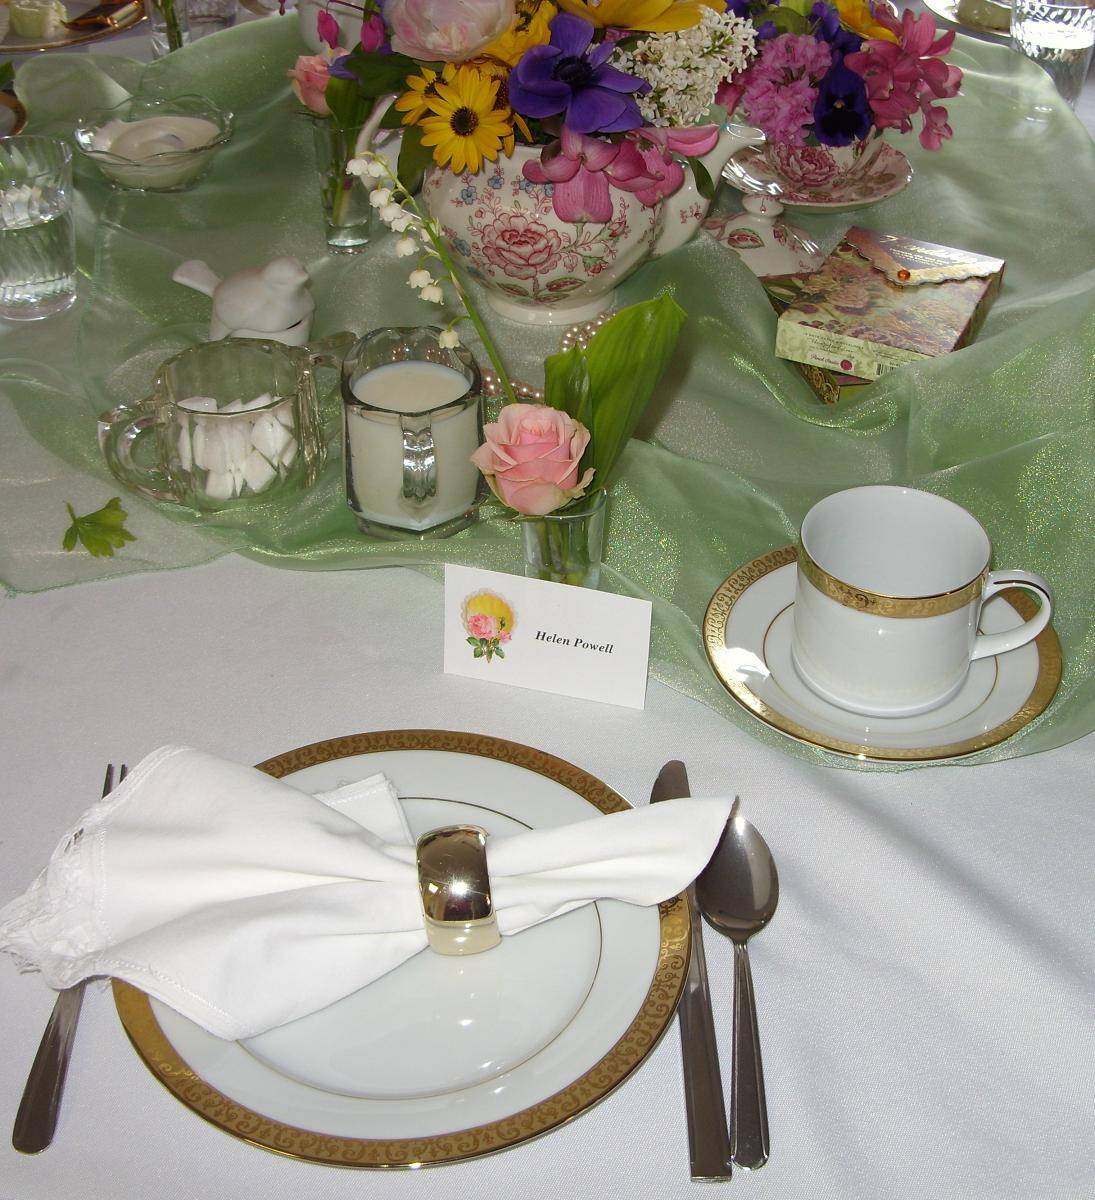 English Tea Party Decorations: ShabbyNChic: An Afternoon Tea Party